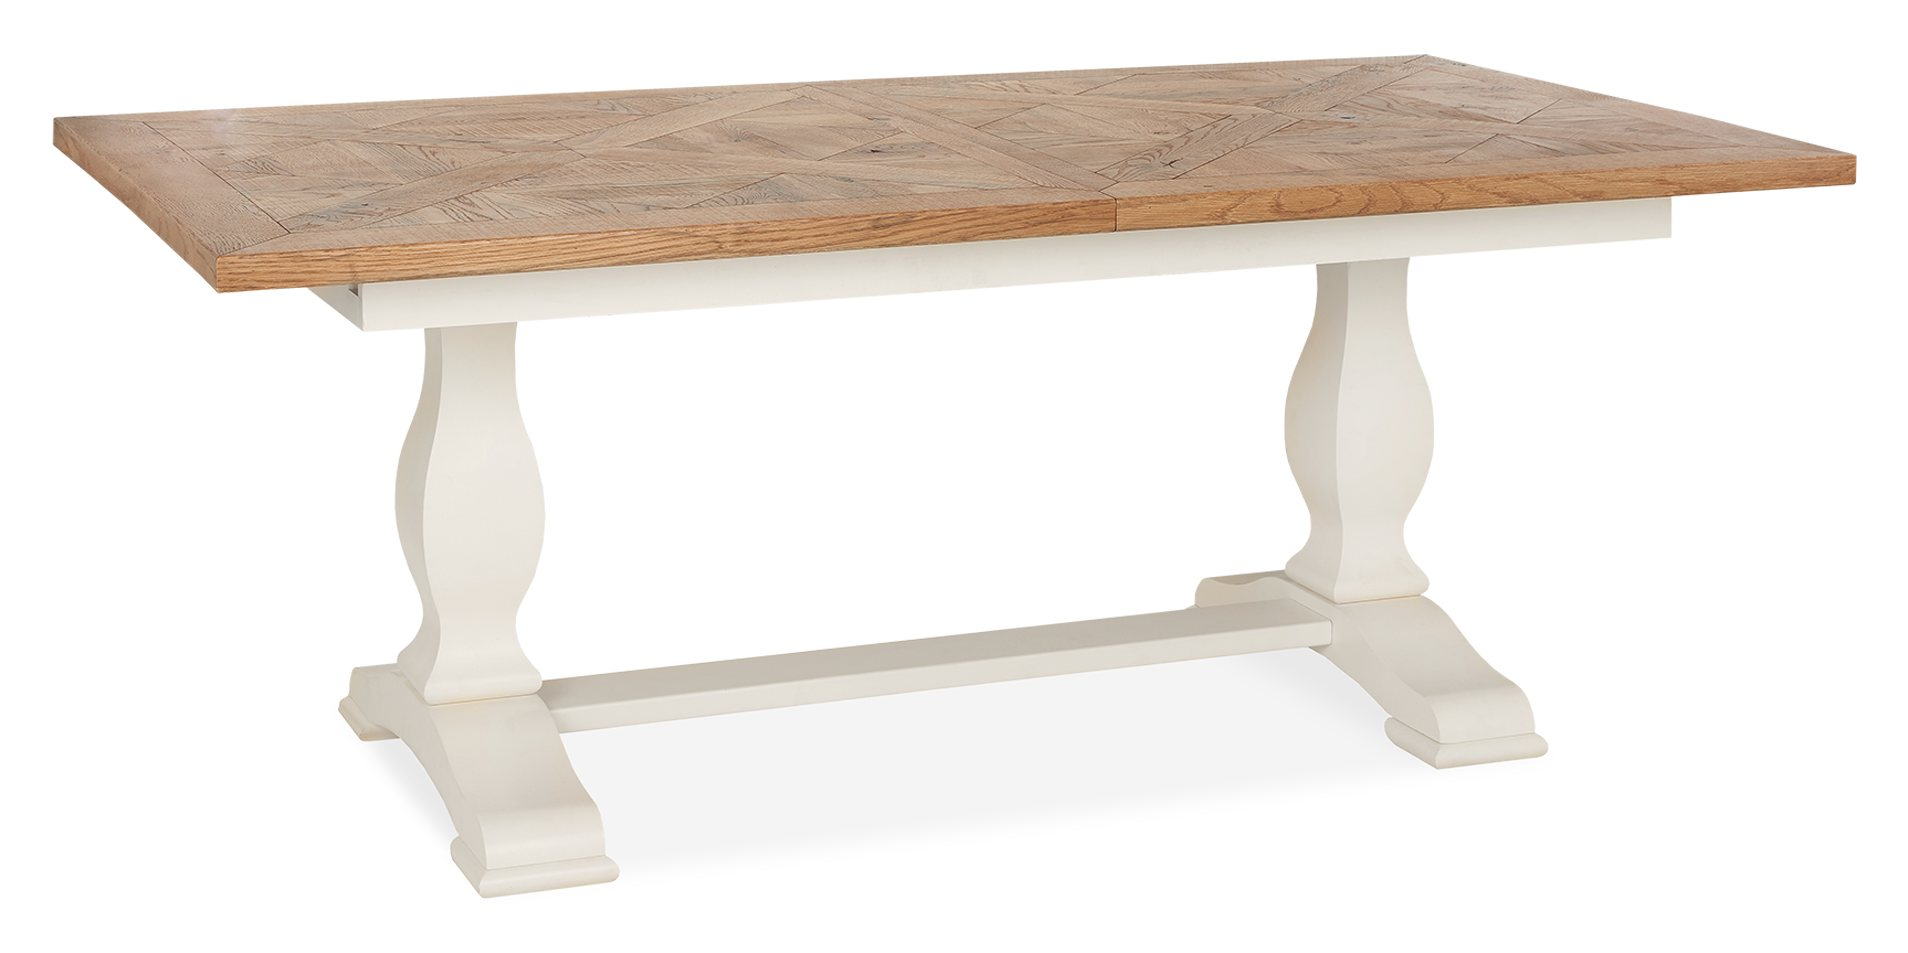 HIGHLAND EXTENDING TABLE CLOSED - L190cm x D100cm x H76cm